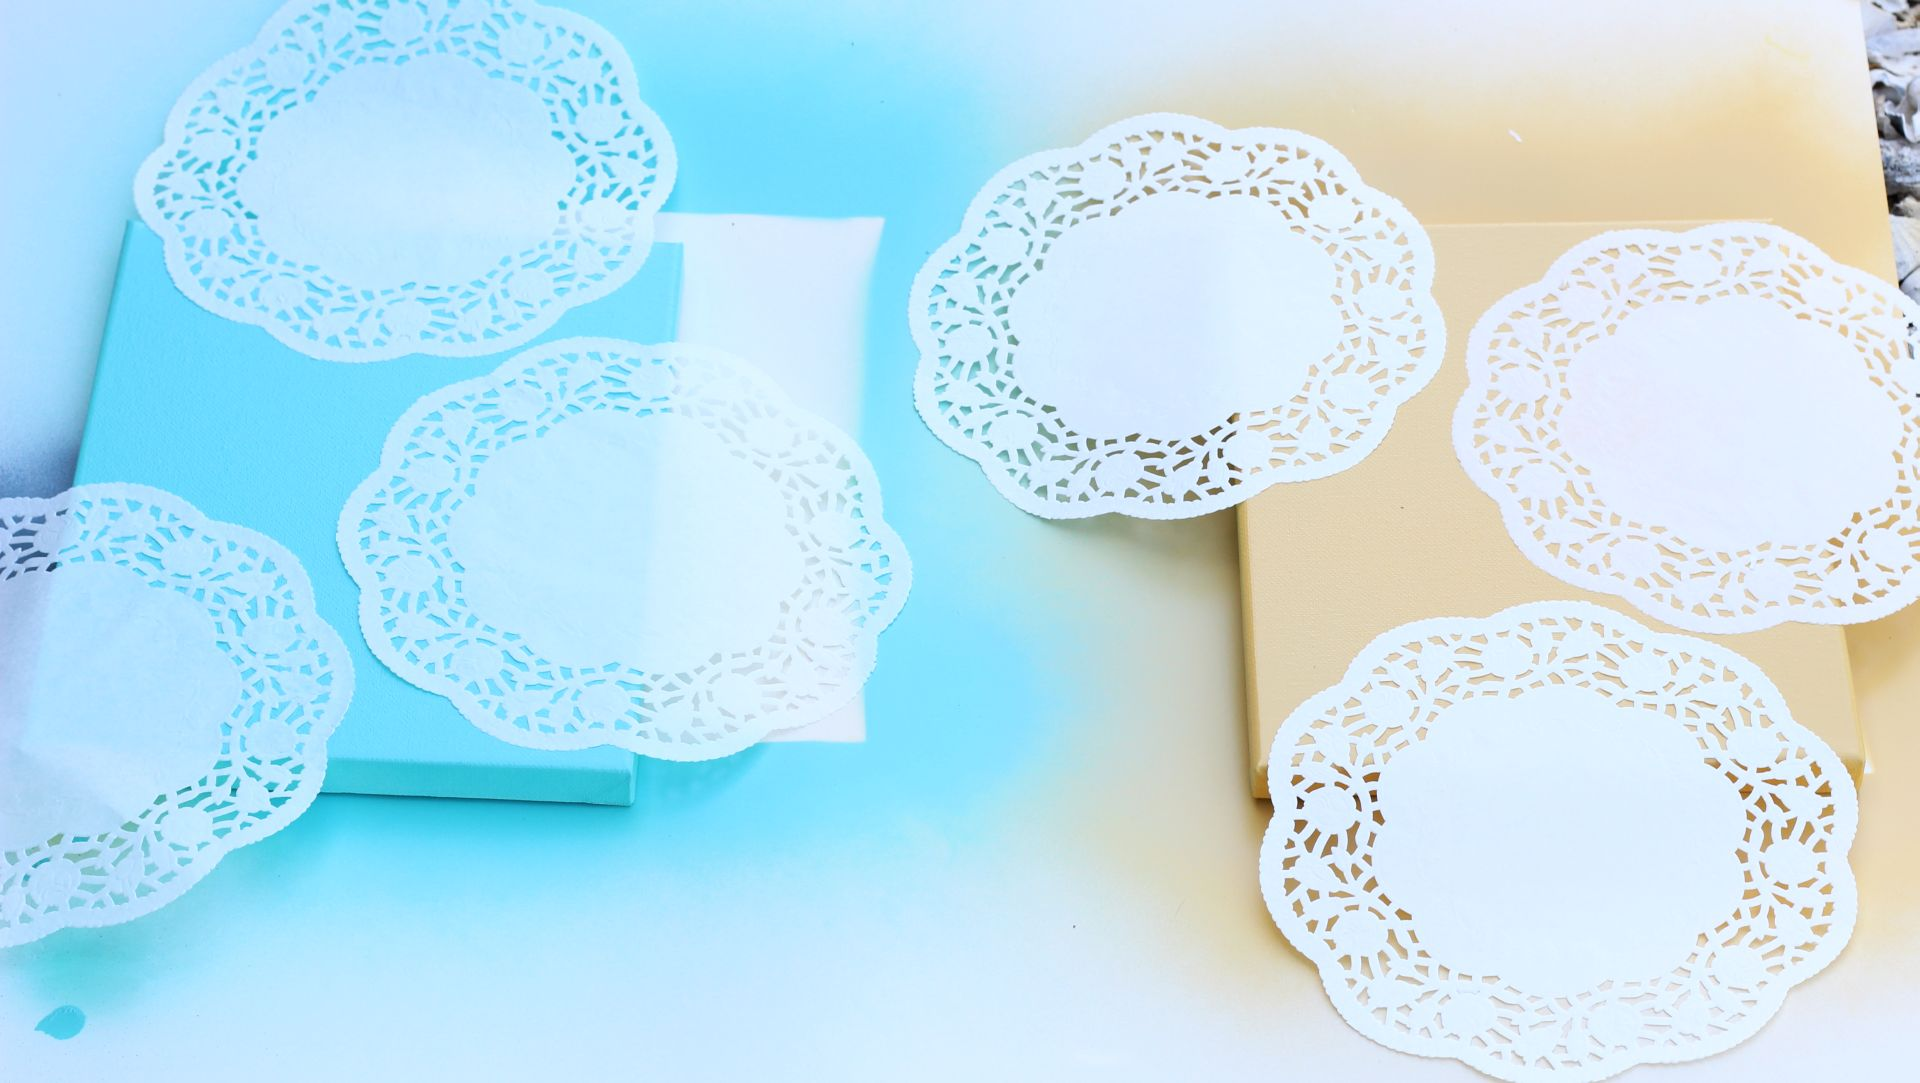 Spray Paint For Lace Projects